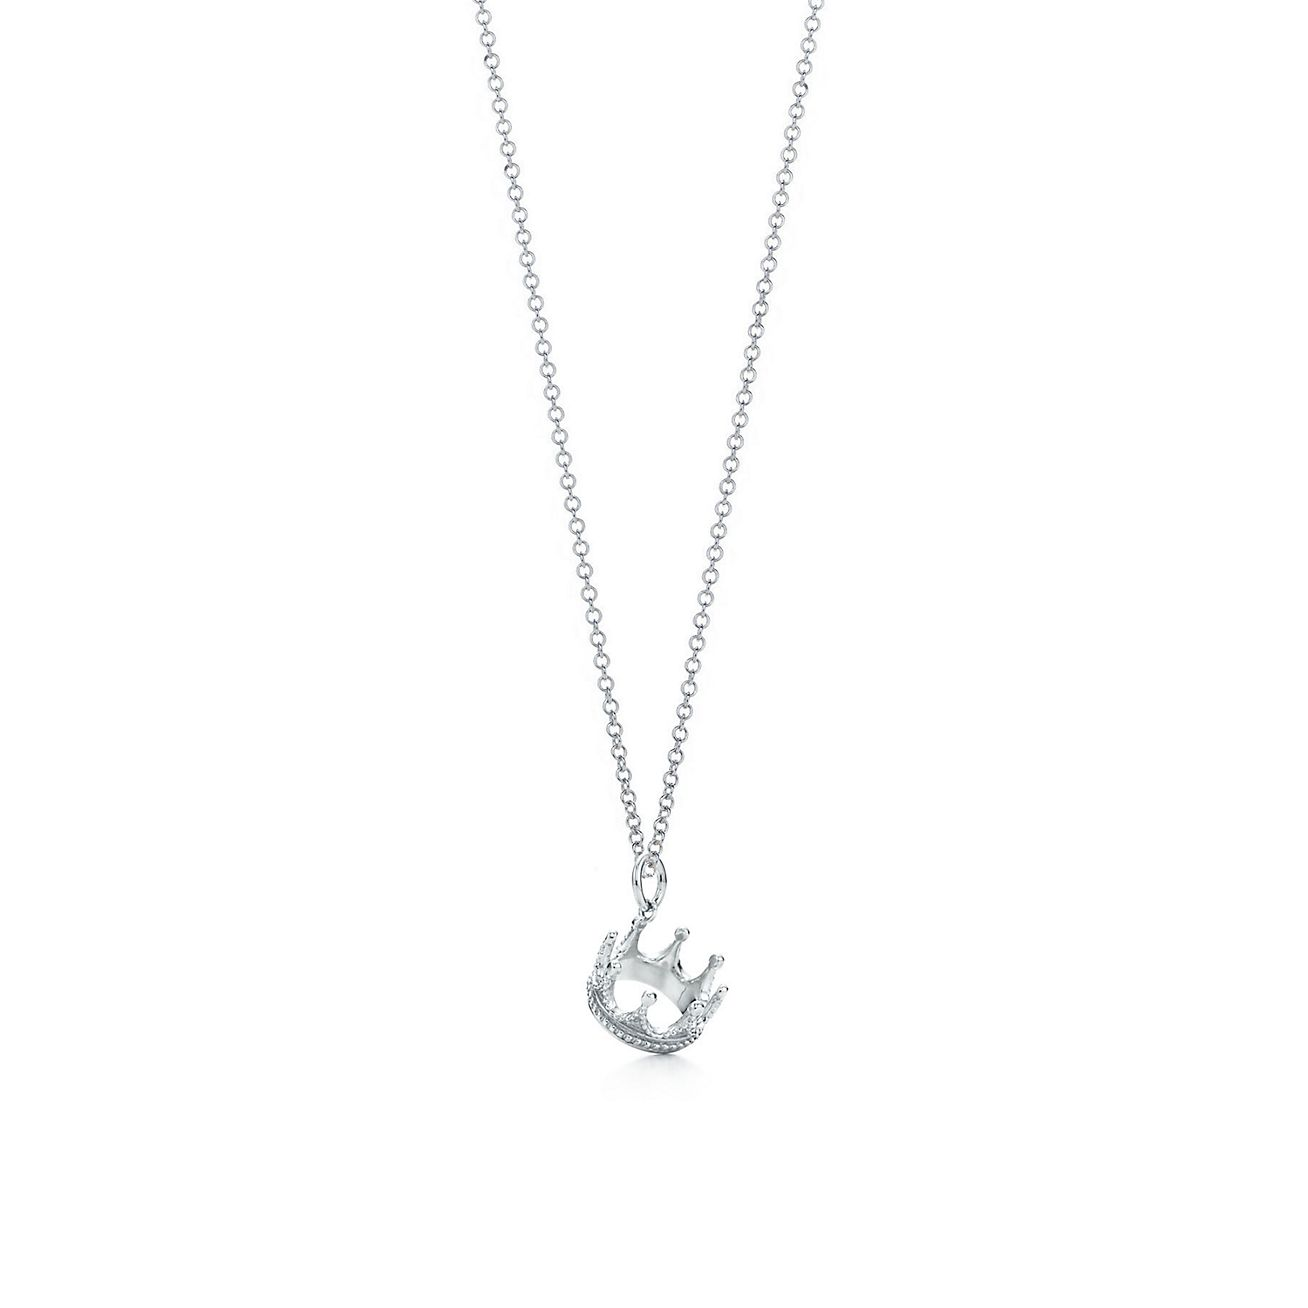 little pendant products usa crown necklace belle zoe